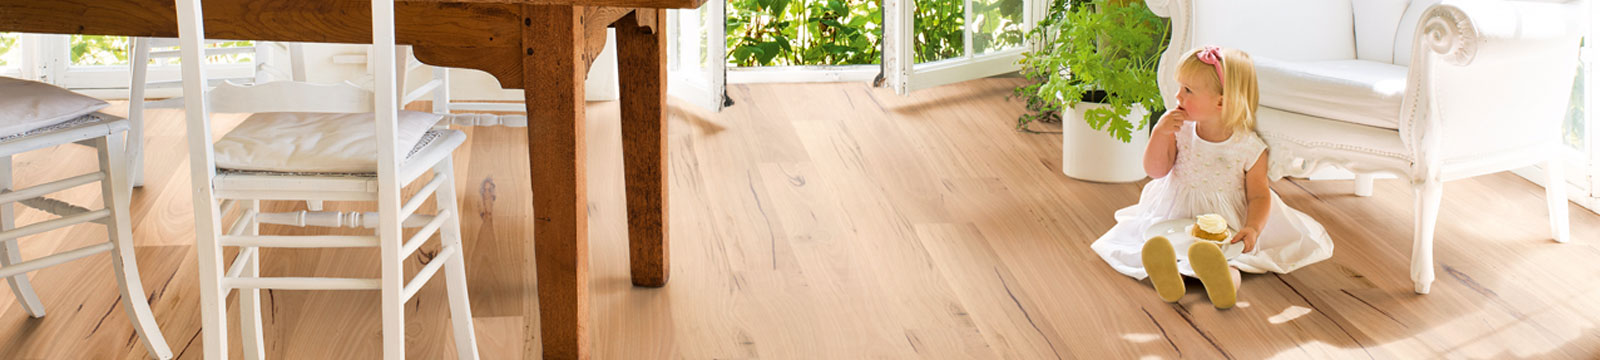 Quick-Step Readyflor Timber Flooring